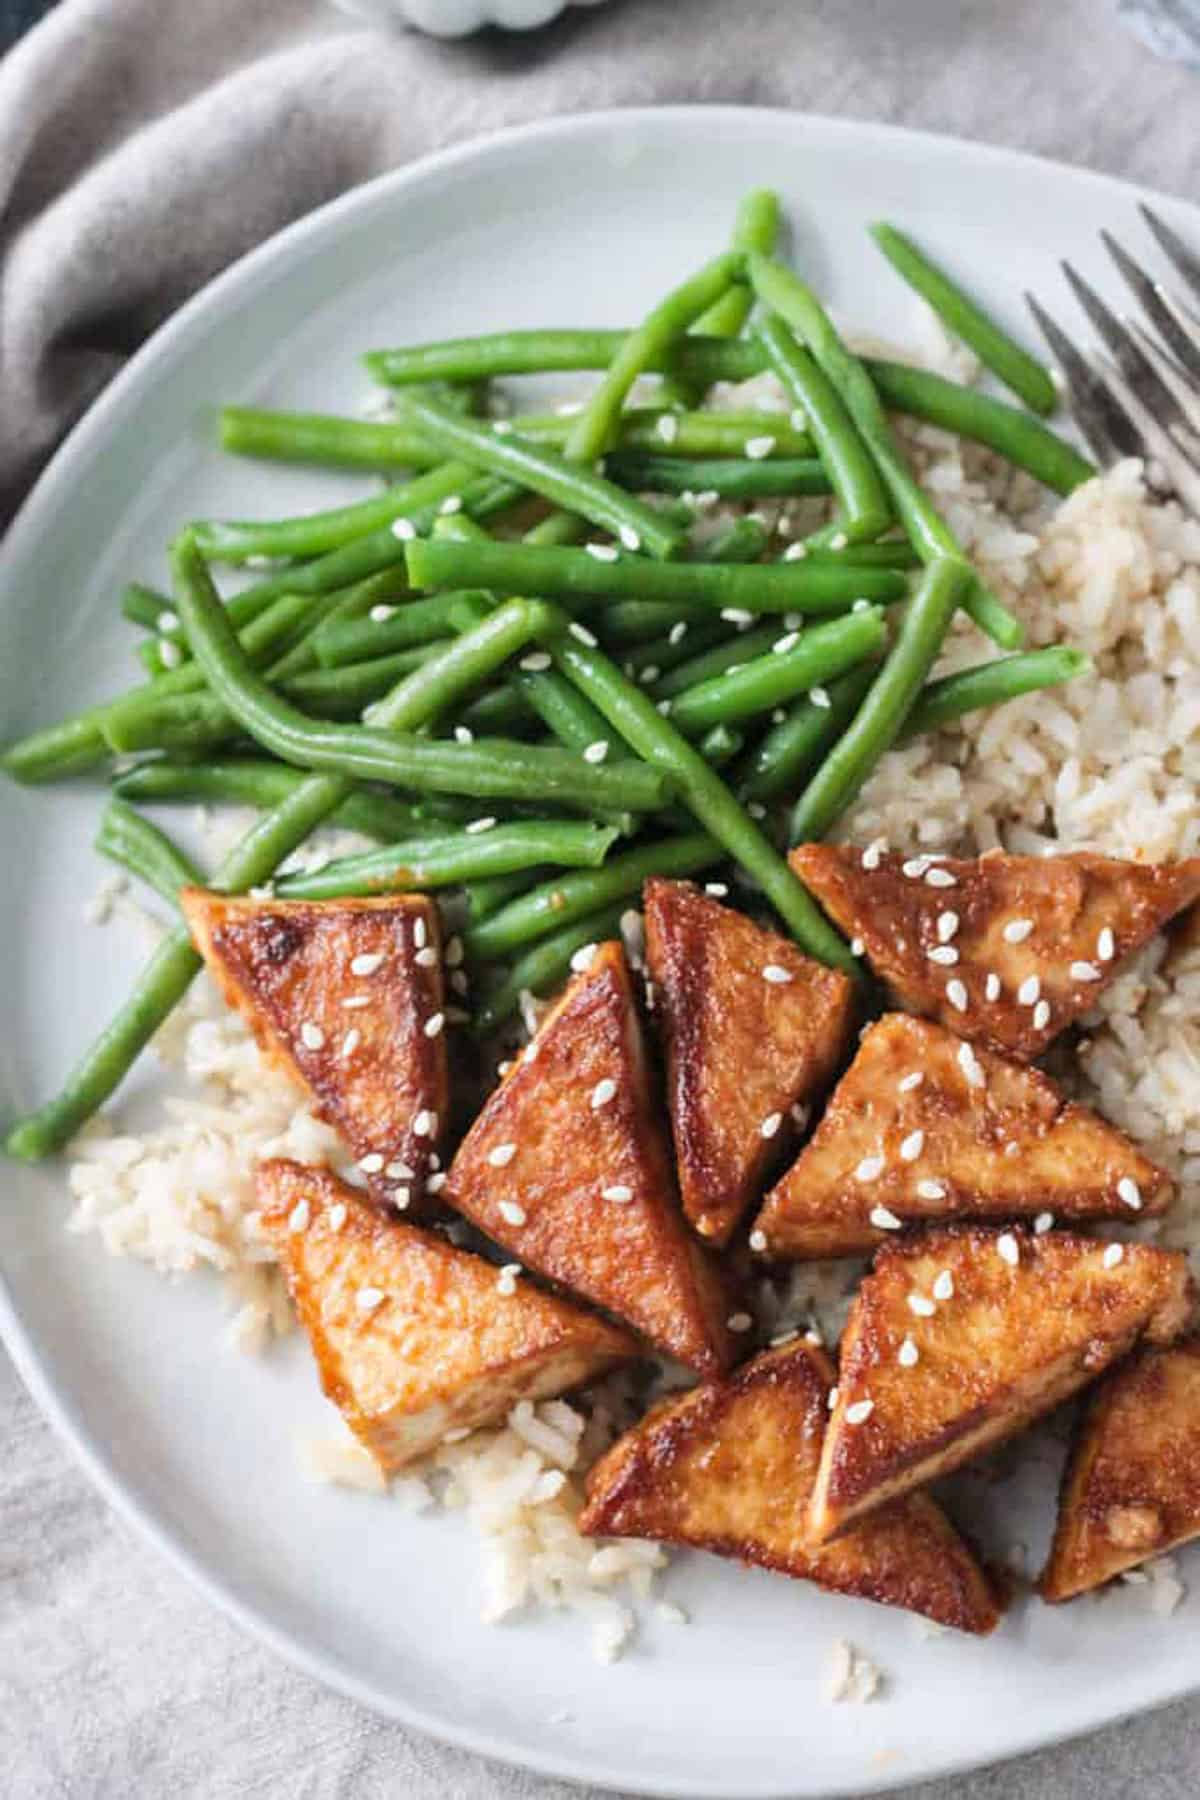 Close up of golden brown tofu triangles sprinkled with sesame seeds.